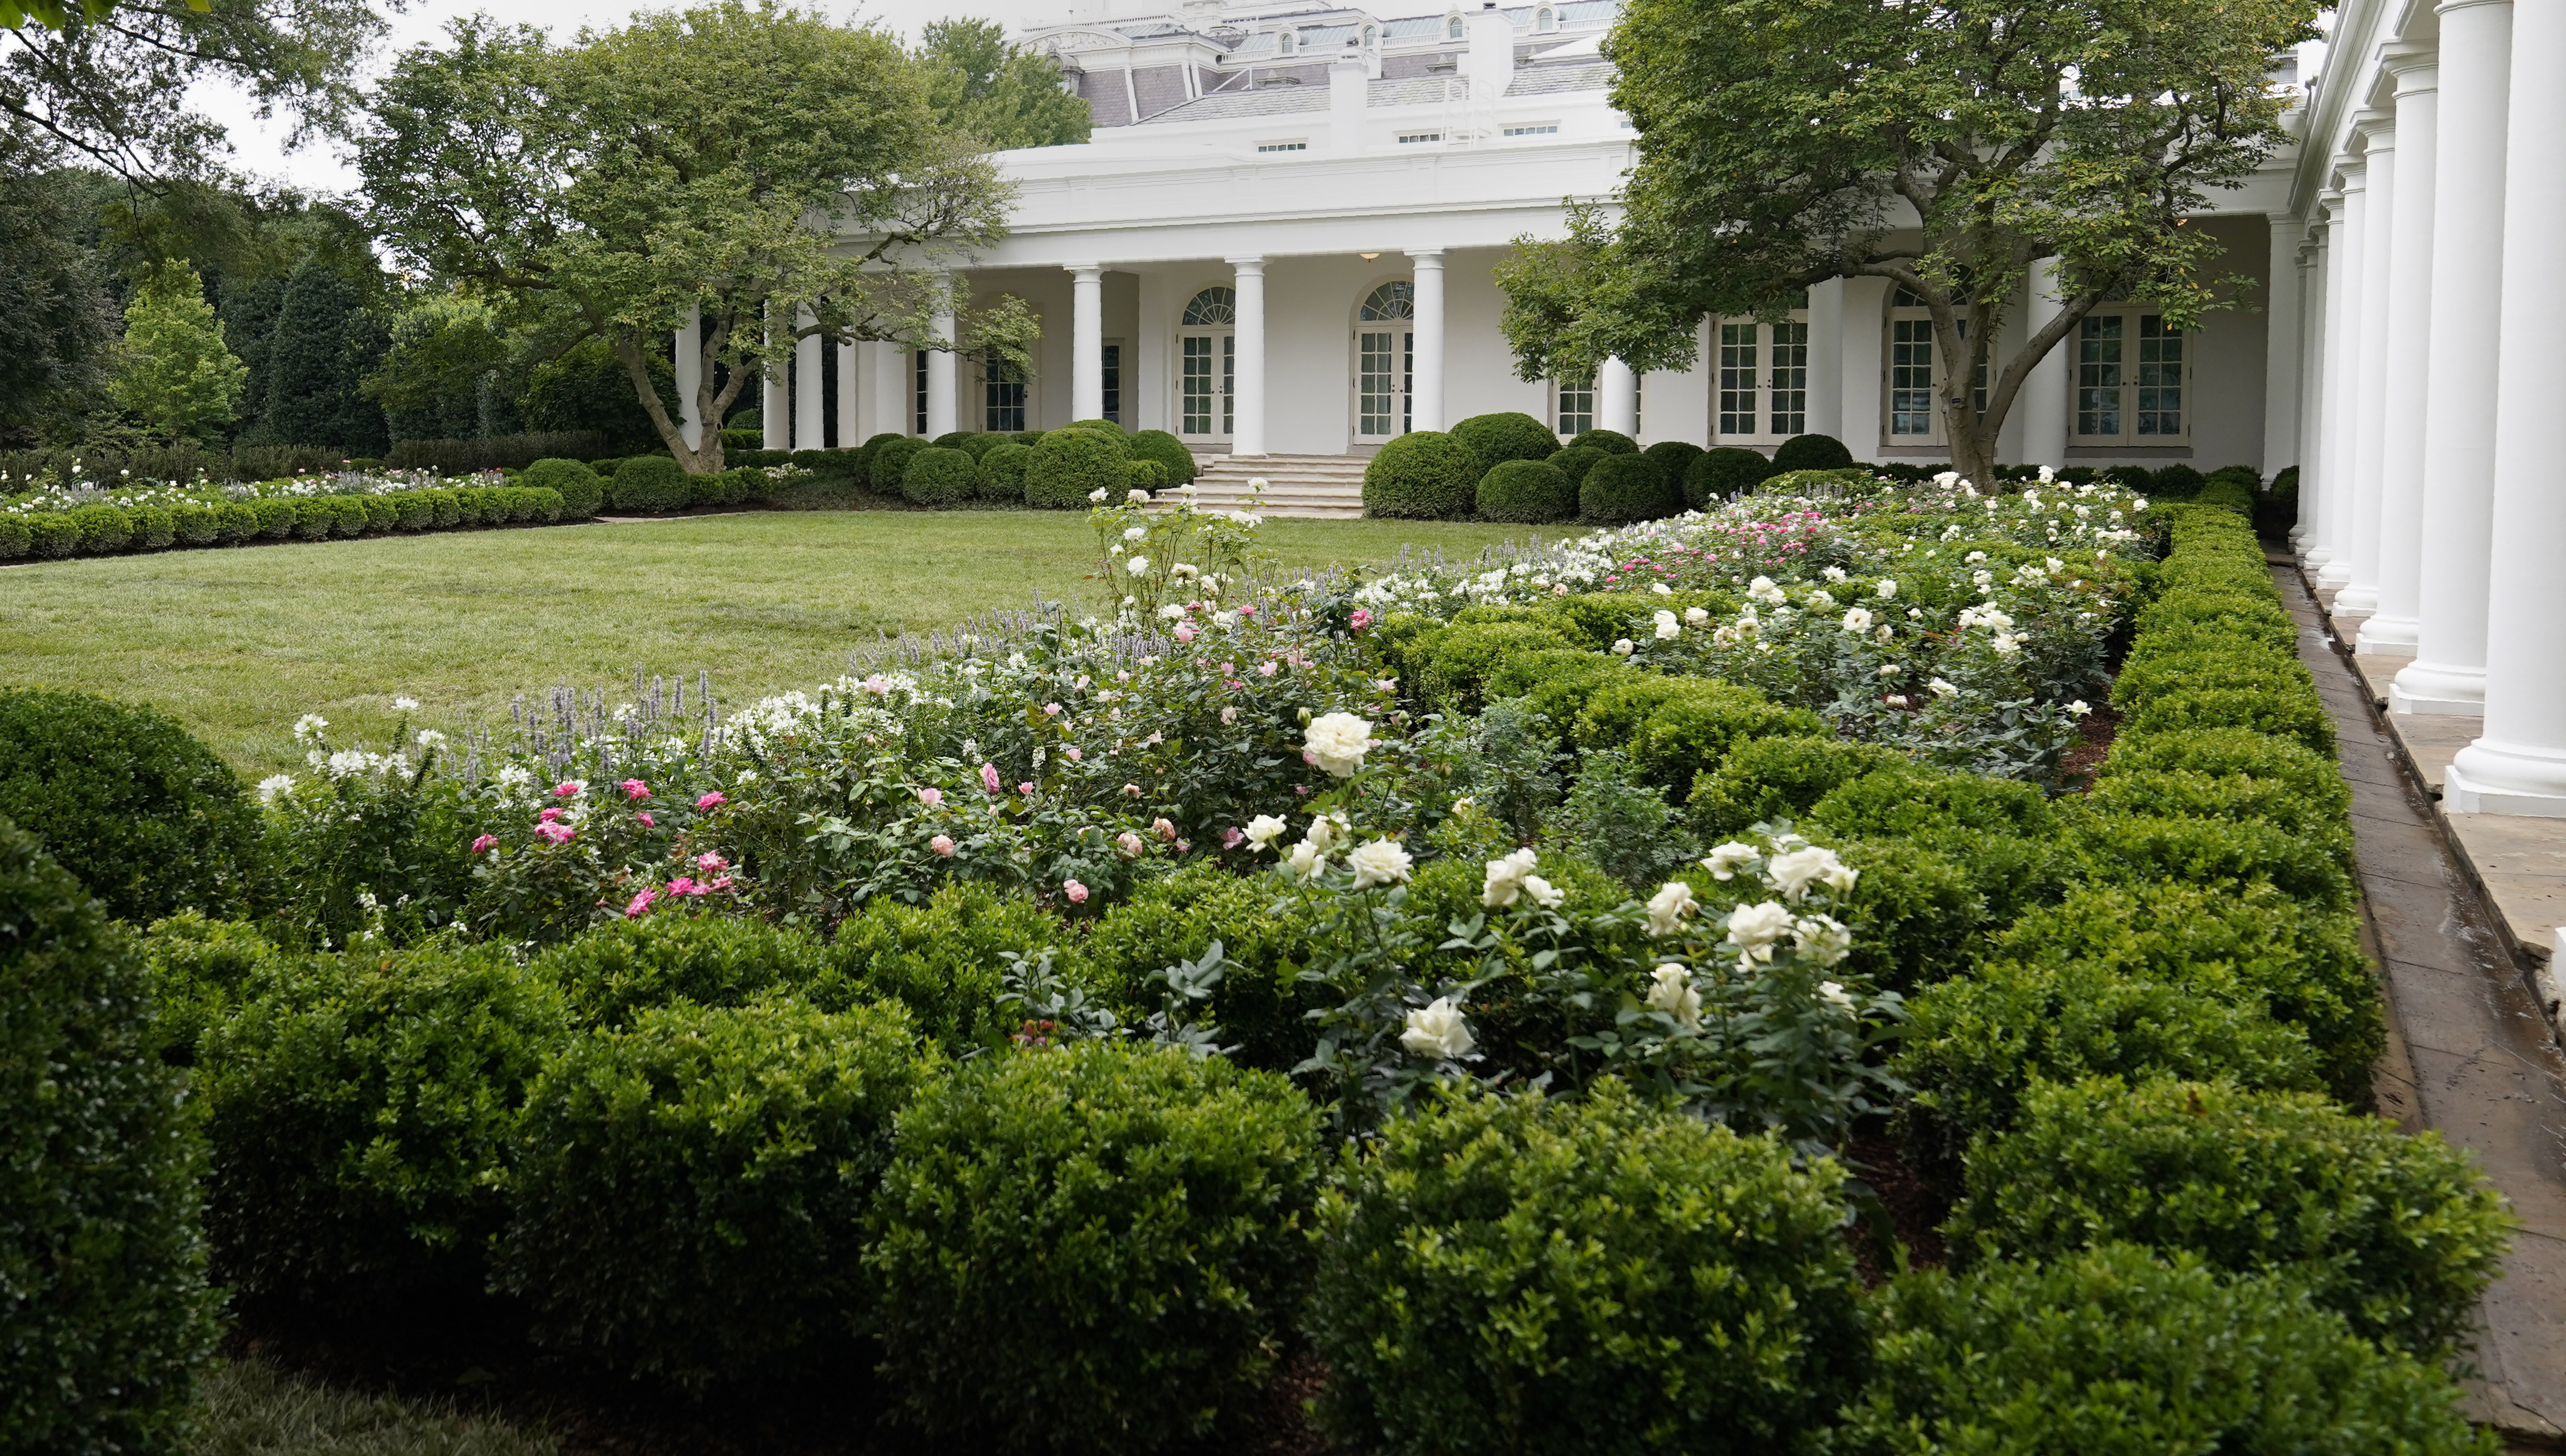 White House Rose Garden Renovation Newly Spruced Up Garden Set For First Lady Speech Chicago Sun Times